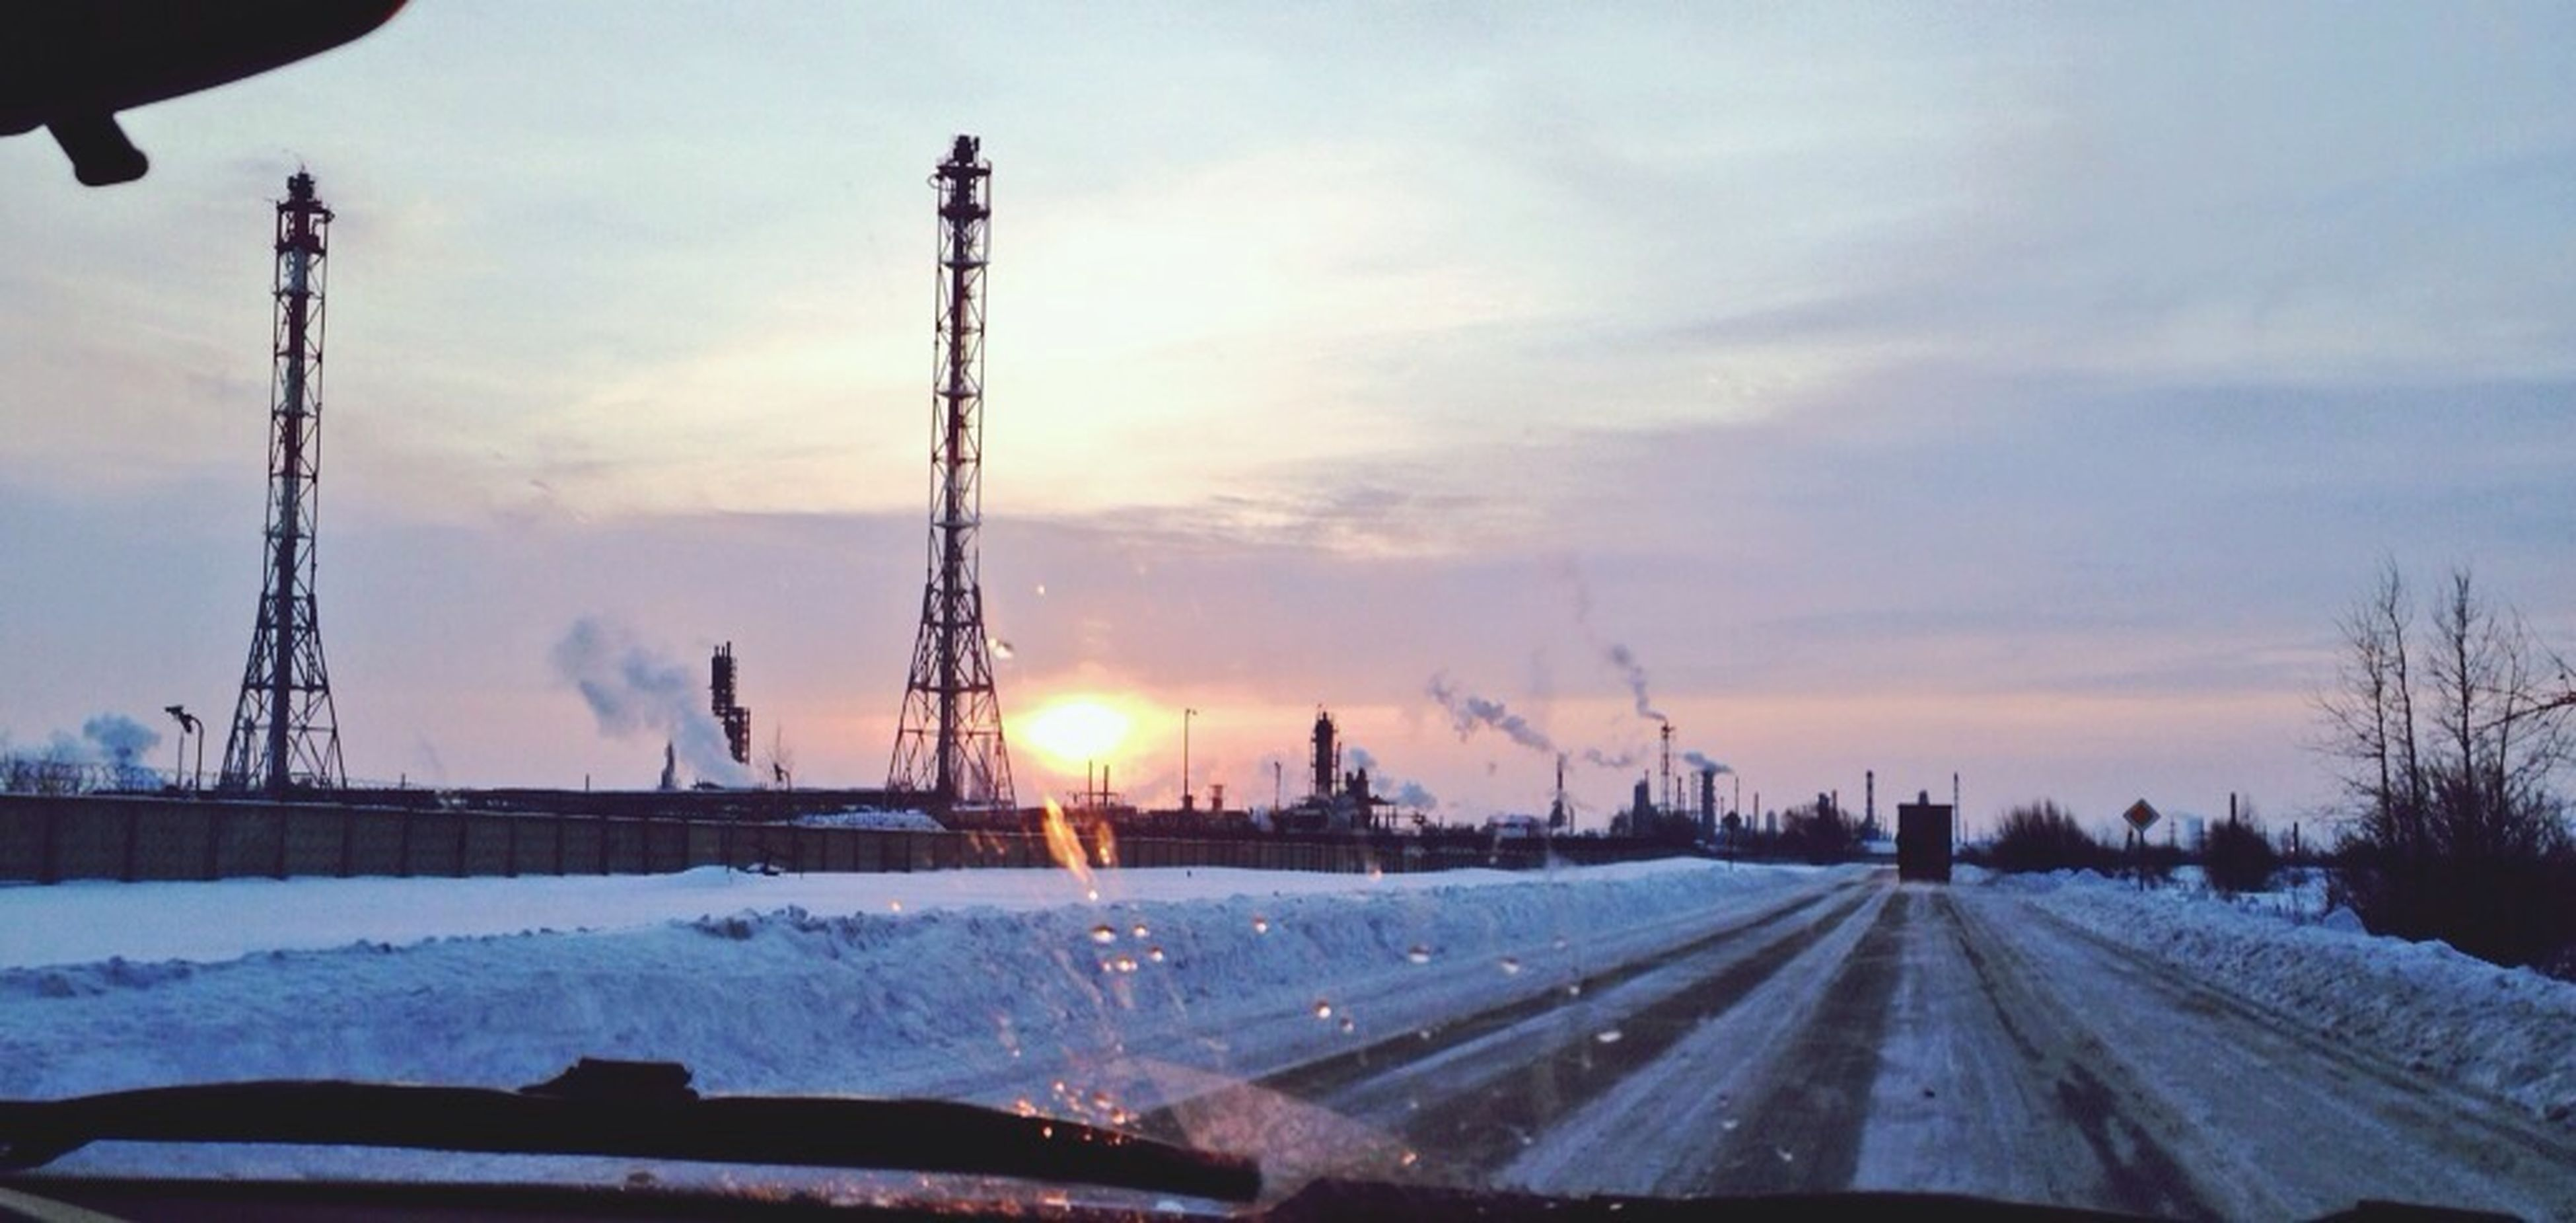 snow, cold temperature, winter, sunset, sky, weather, season, frozen, cloud - sky, electricity pylon, transportation, nature, fuel and power generation, electricity, covering, outdoors, no people, beauty in nature, road, crane - construction machinery